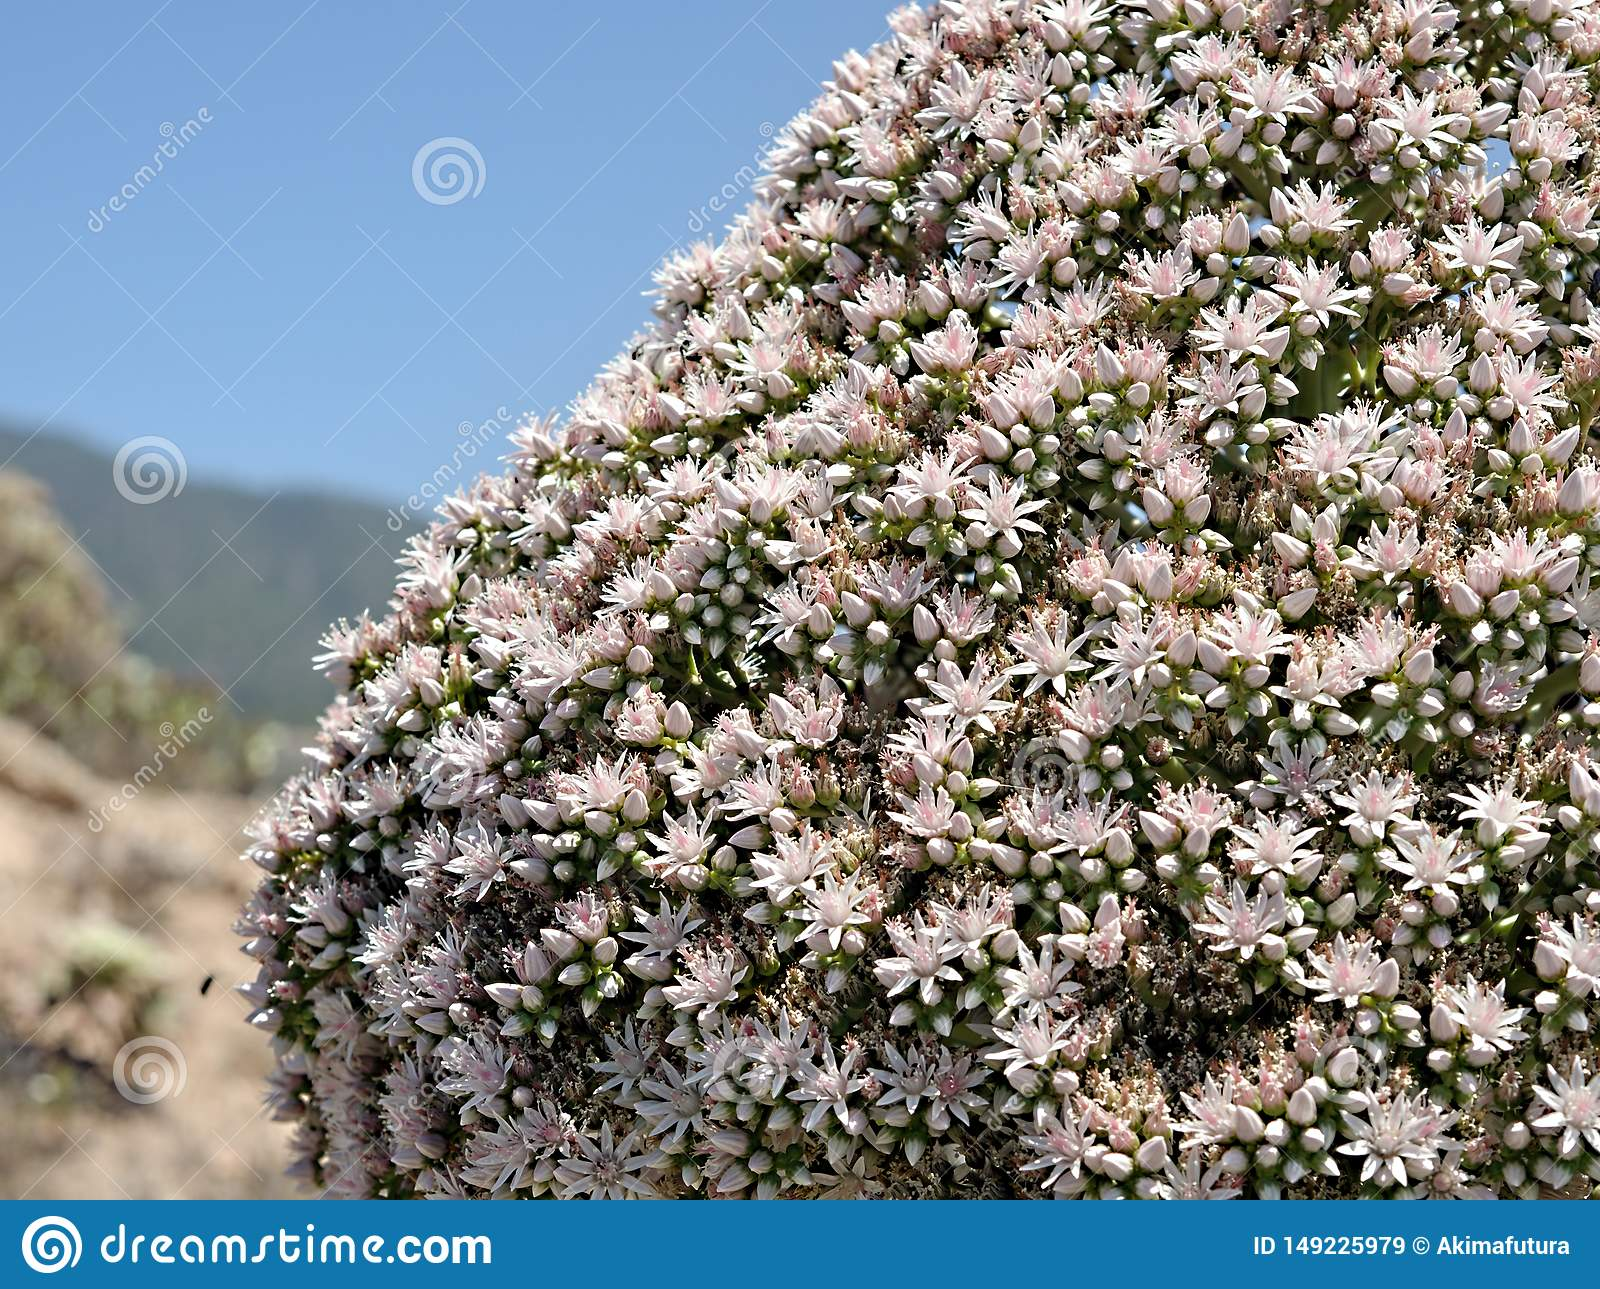 Left page detail, detail, from a verode, succulent species fully blossoming on Tenerife, Canary Island